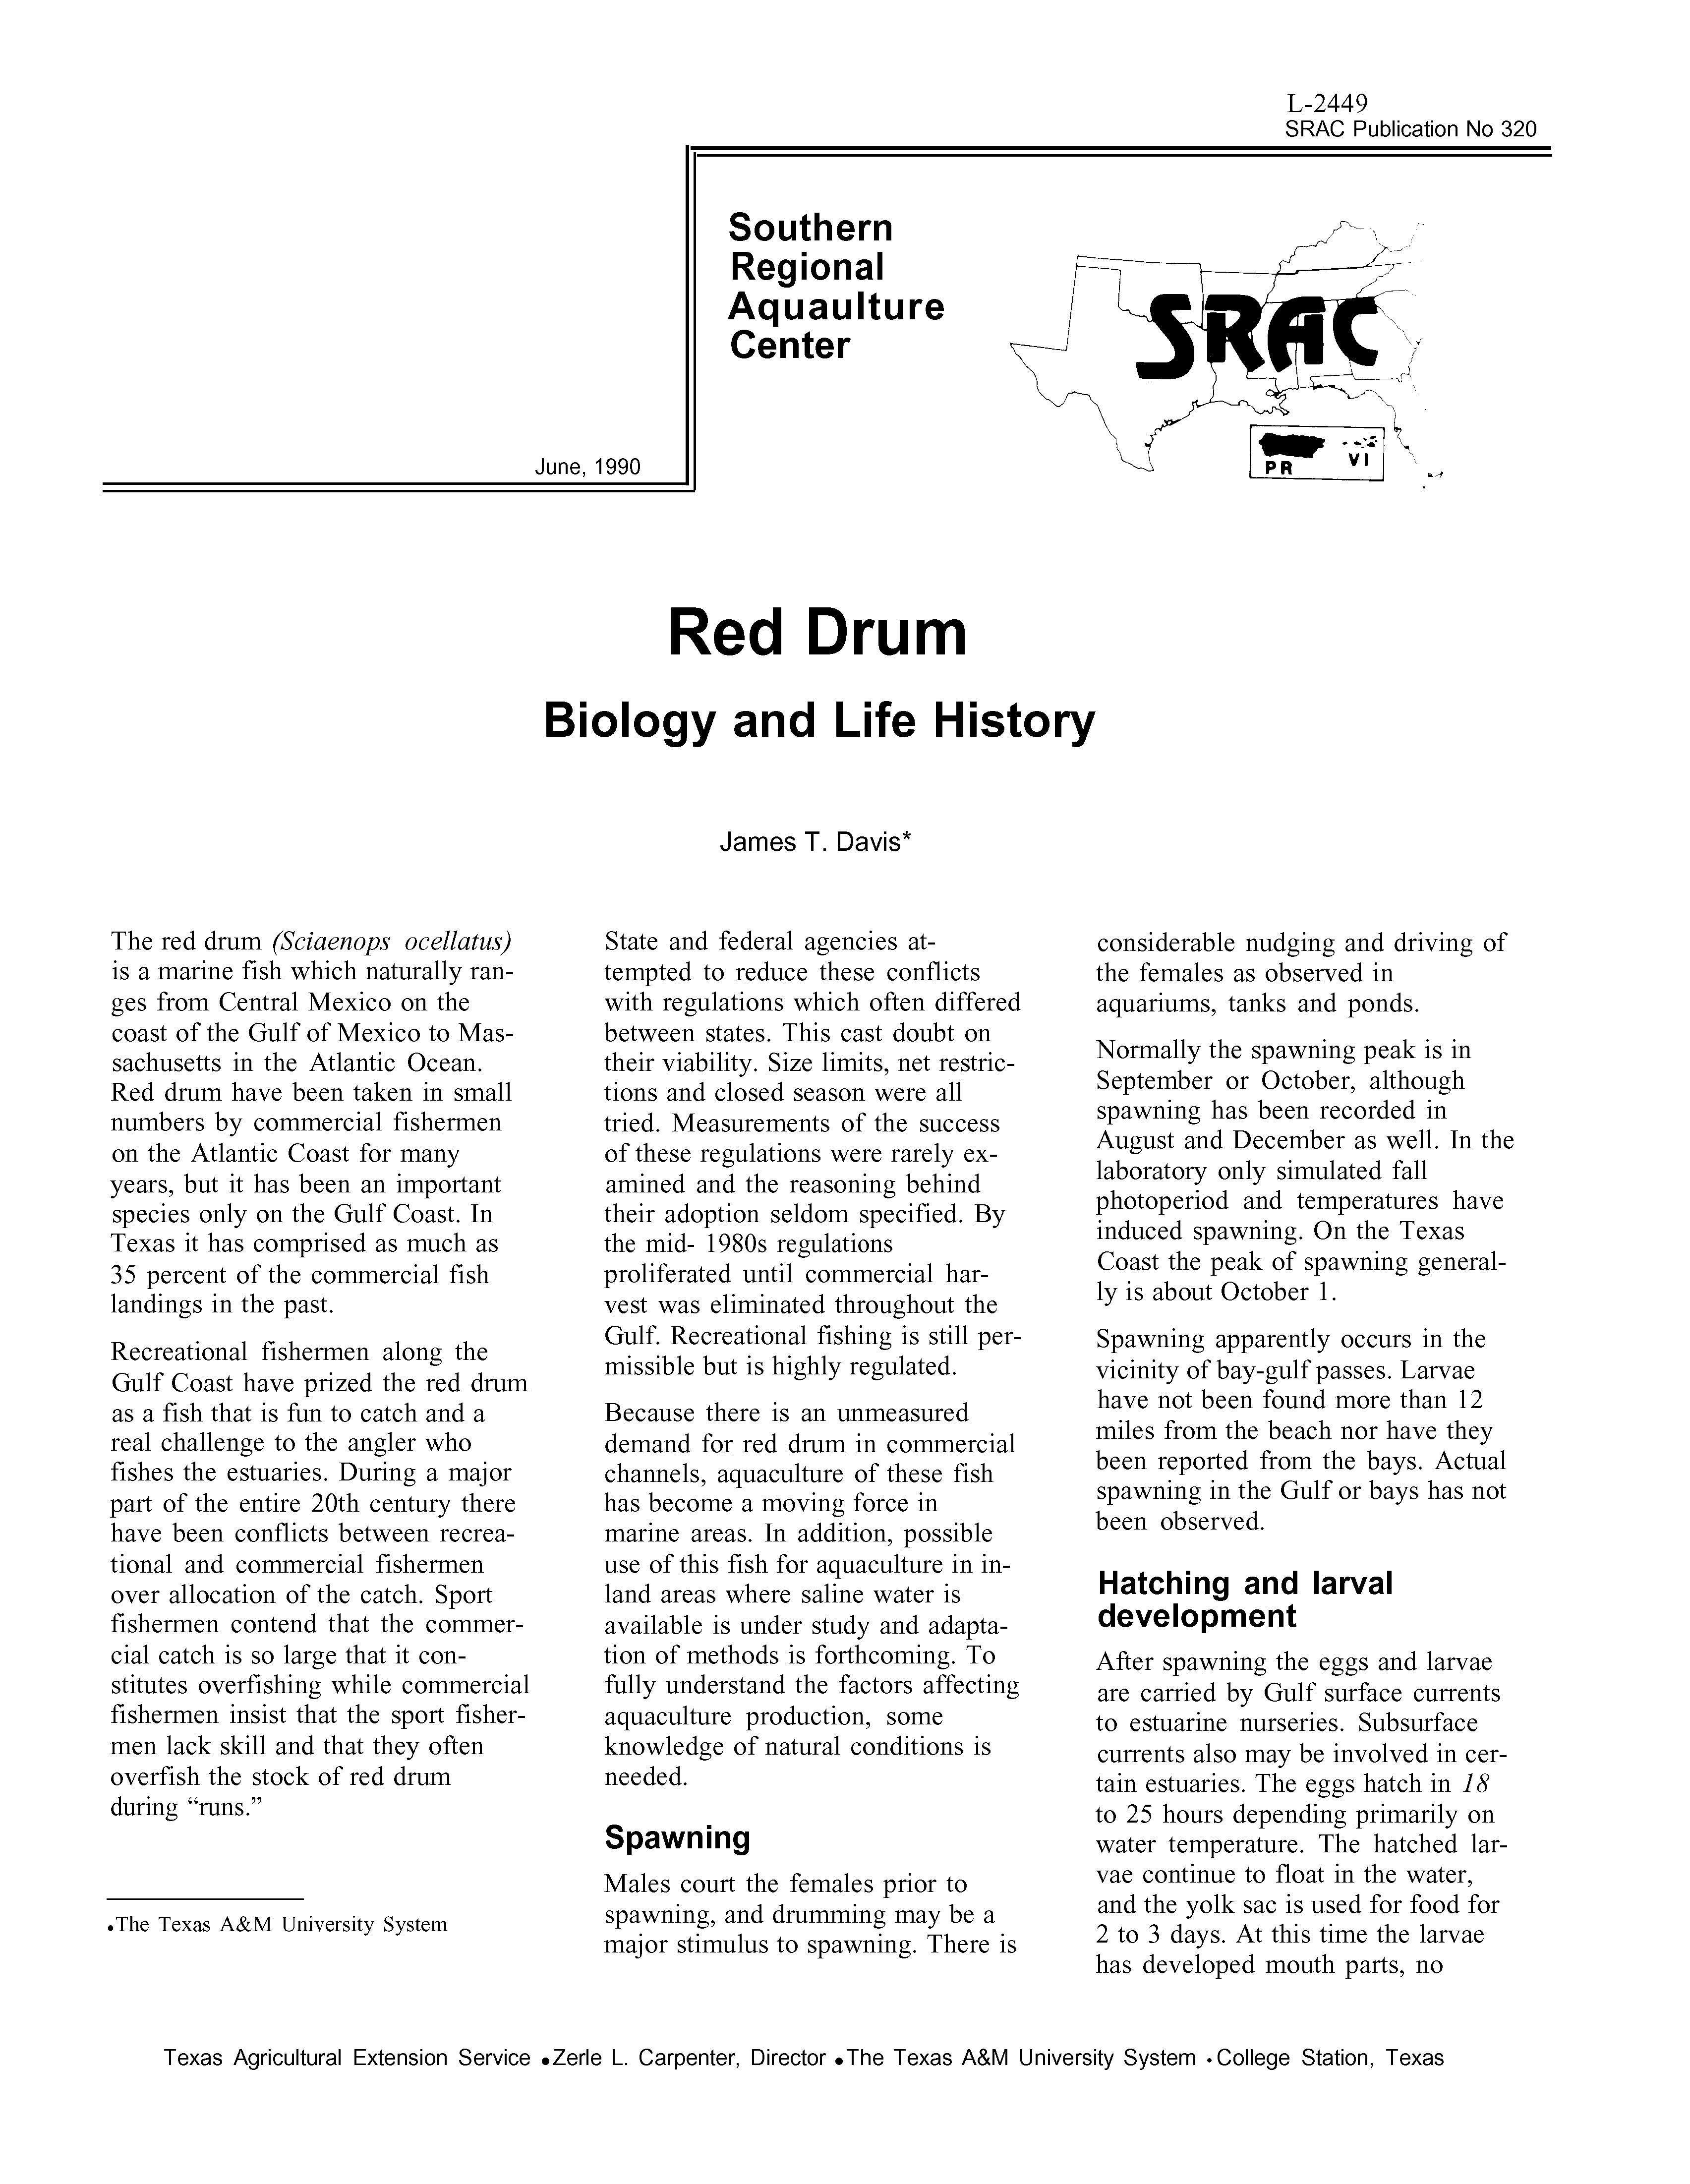 Red Drum: Biology and Life History